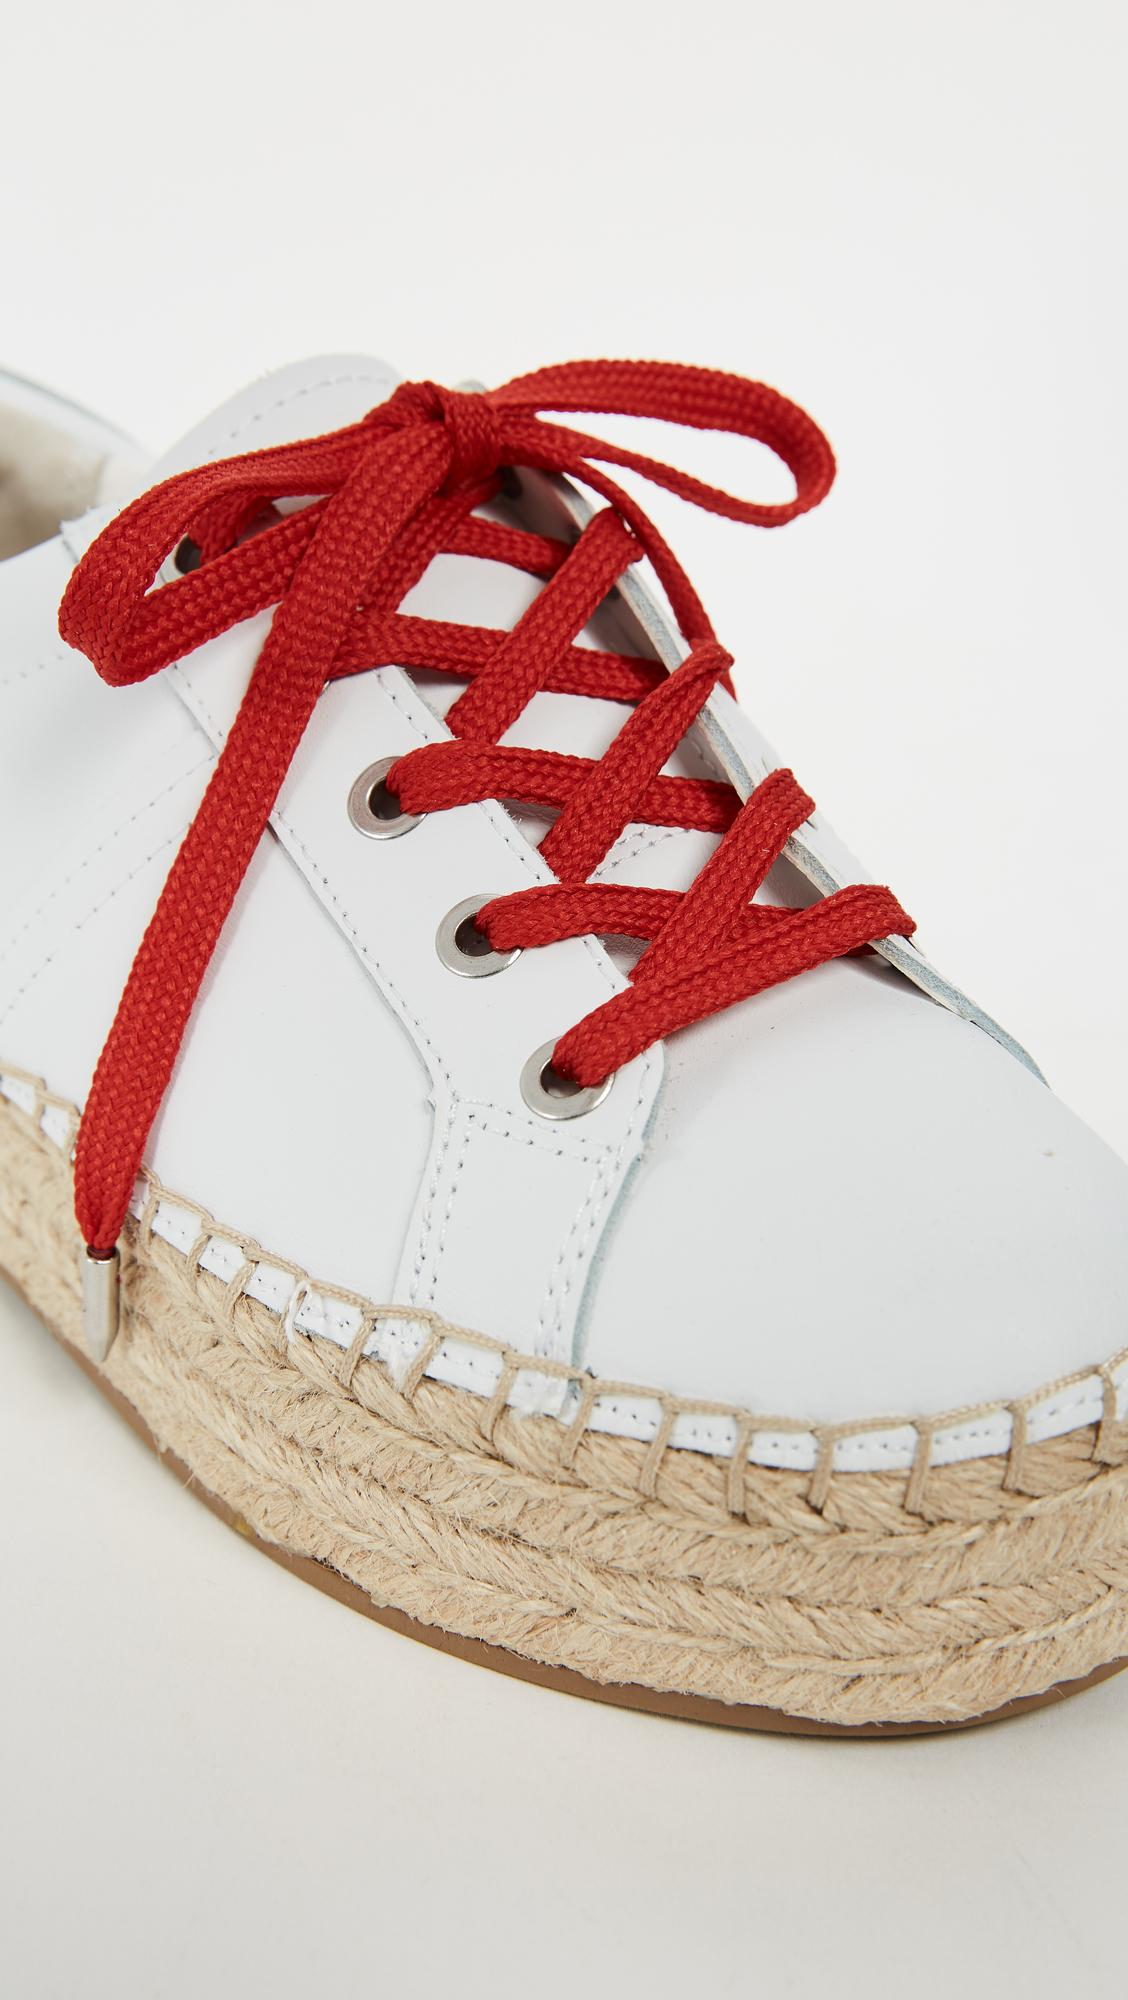 5c213116348e Sam Edelman Carleigh Platform Espadrille Sneakers In Super White Candy Red